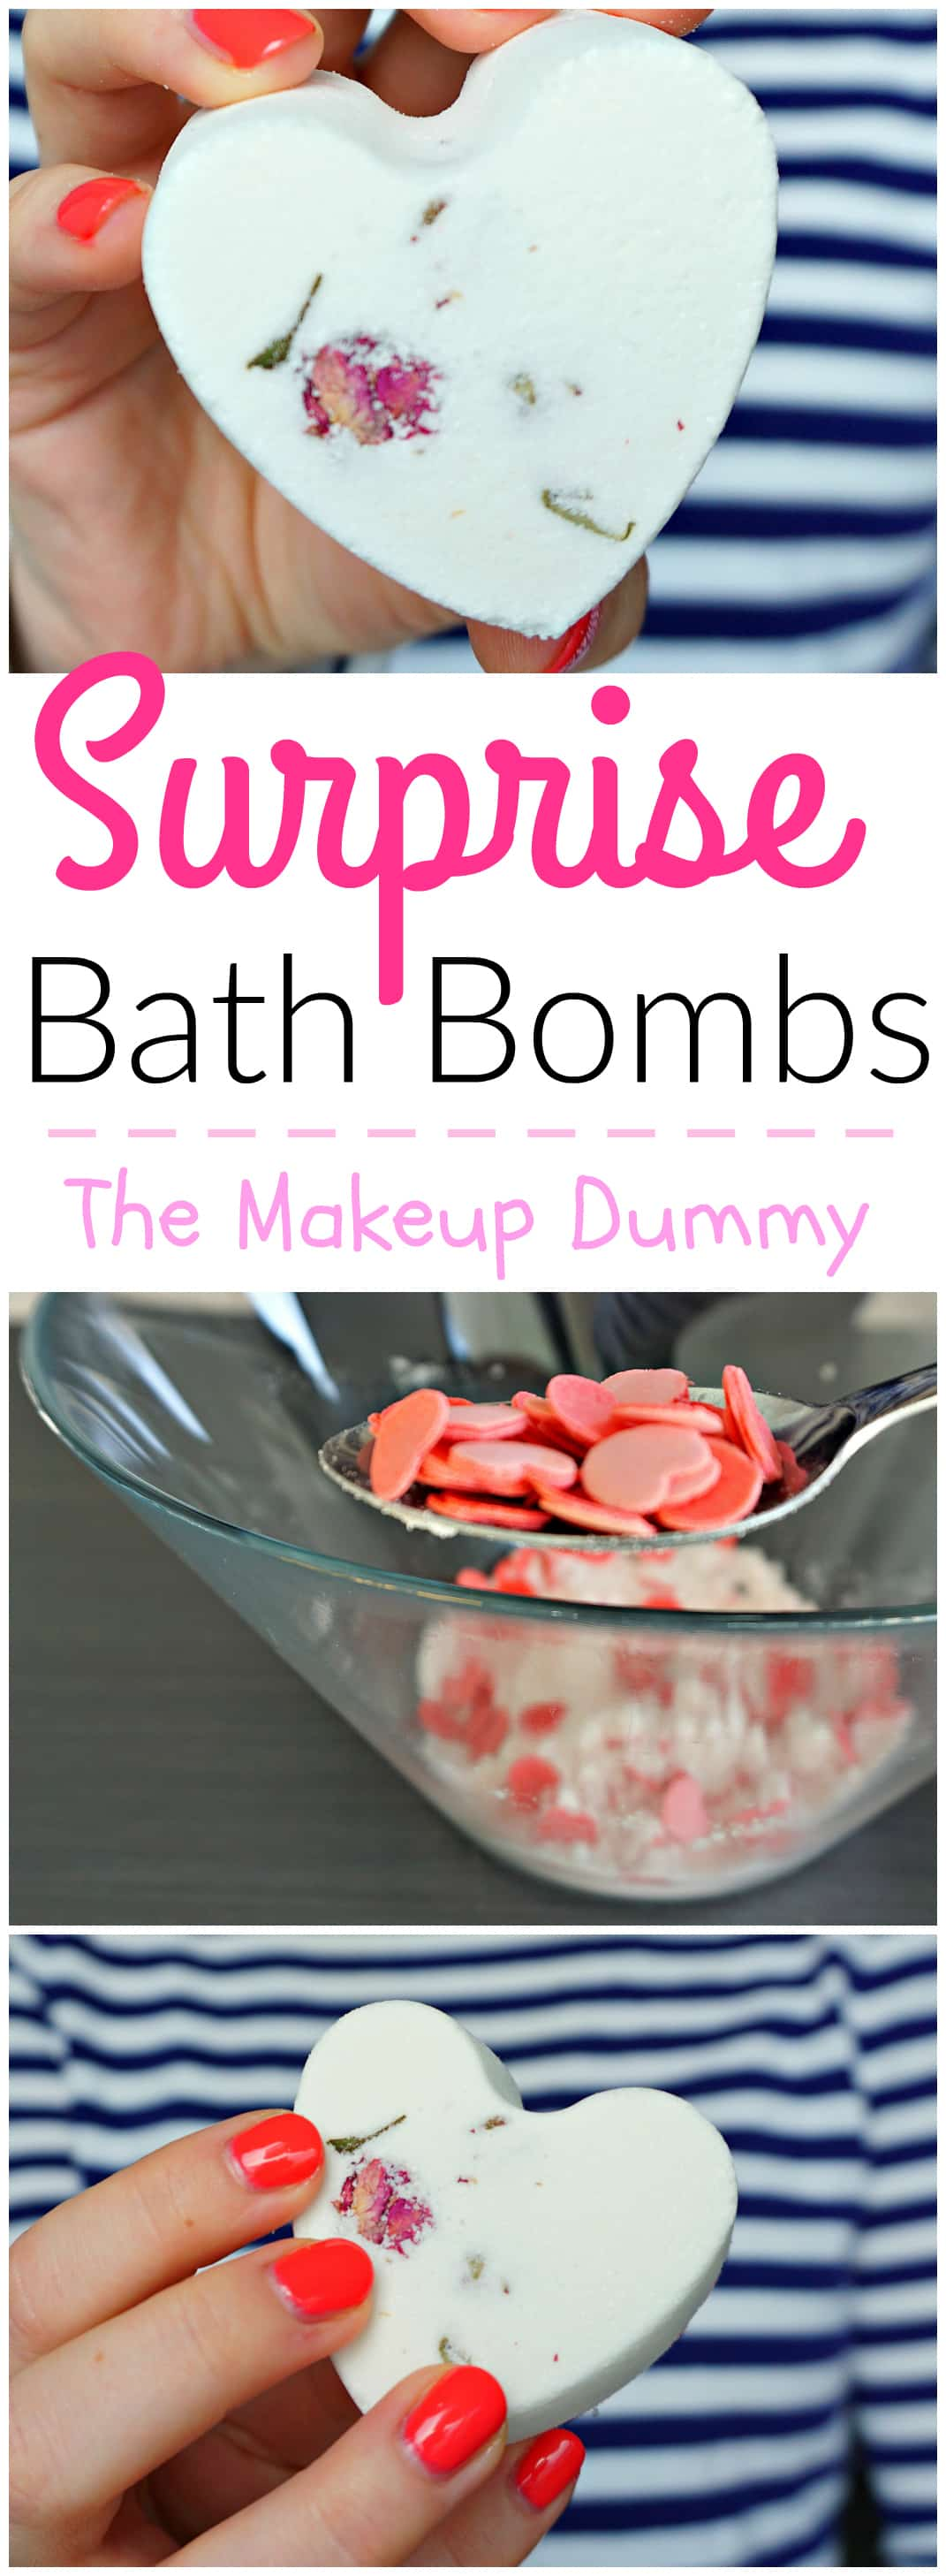 Tutorial on How To make your own dupe Hidden surprise Bath Fizzies with bath confetti - just like the bath bombs from LUSH DIY by The Makeup Dummy